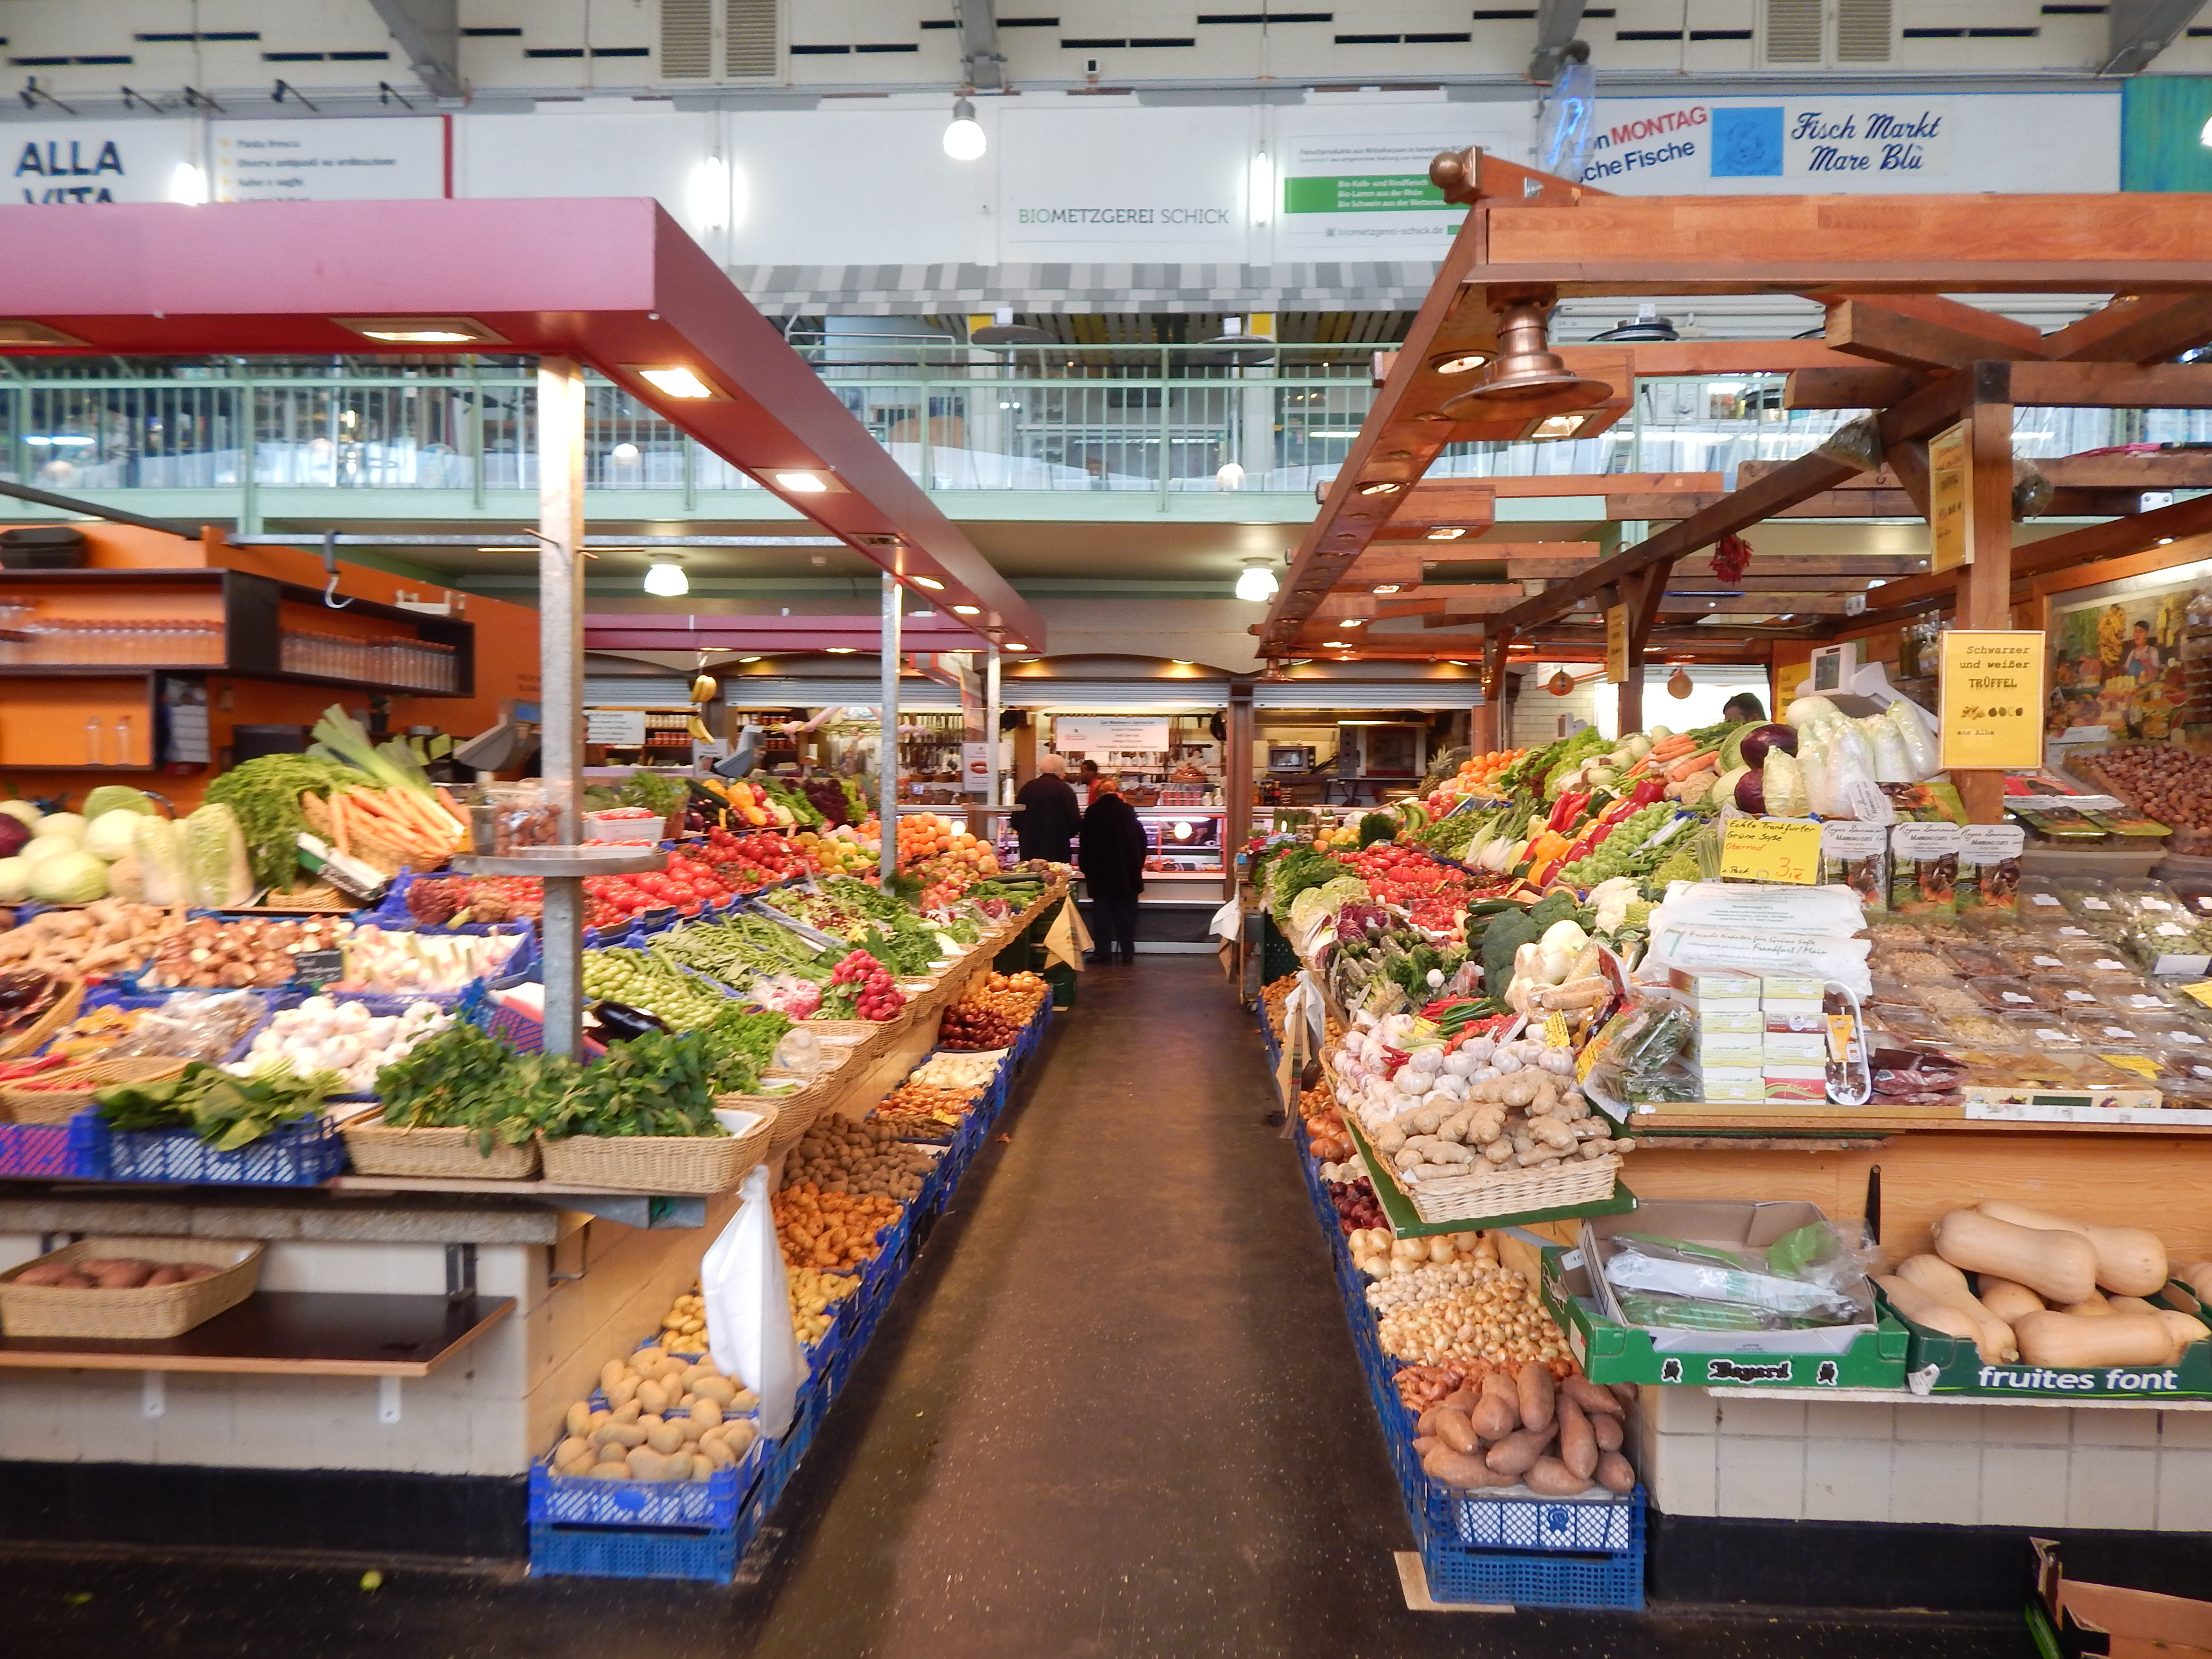 An image of a market in Frankfurt, Germany.